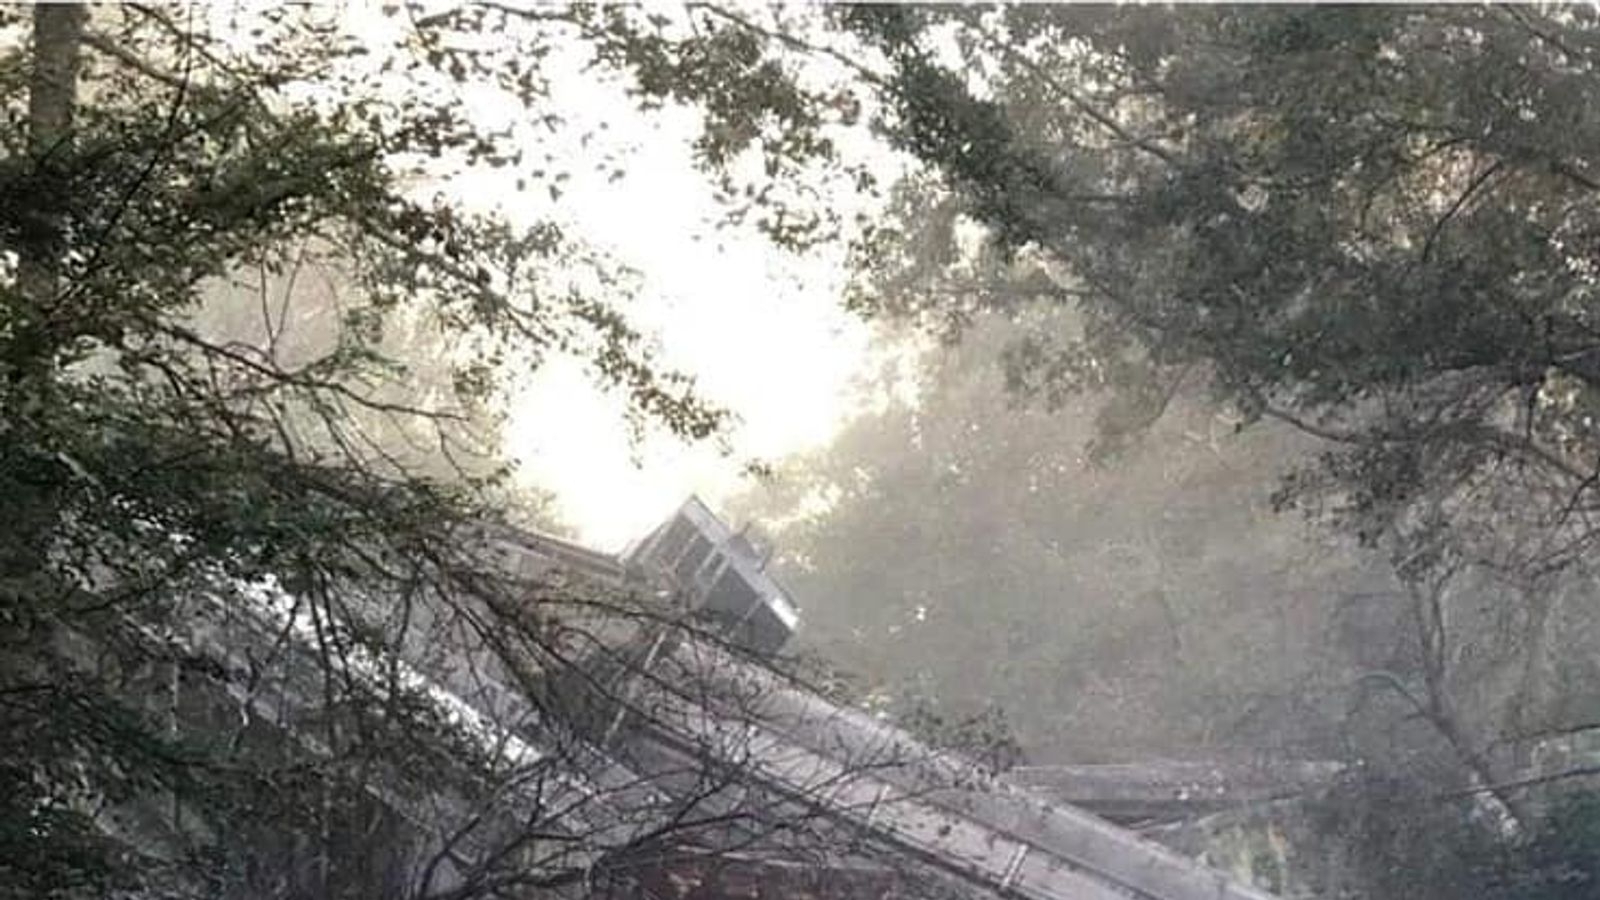 Dozens of carriages fall on highway after train derails